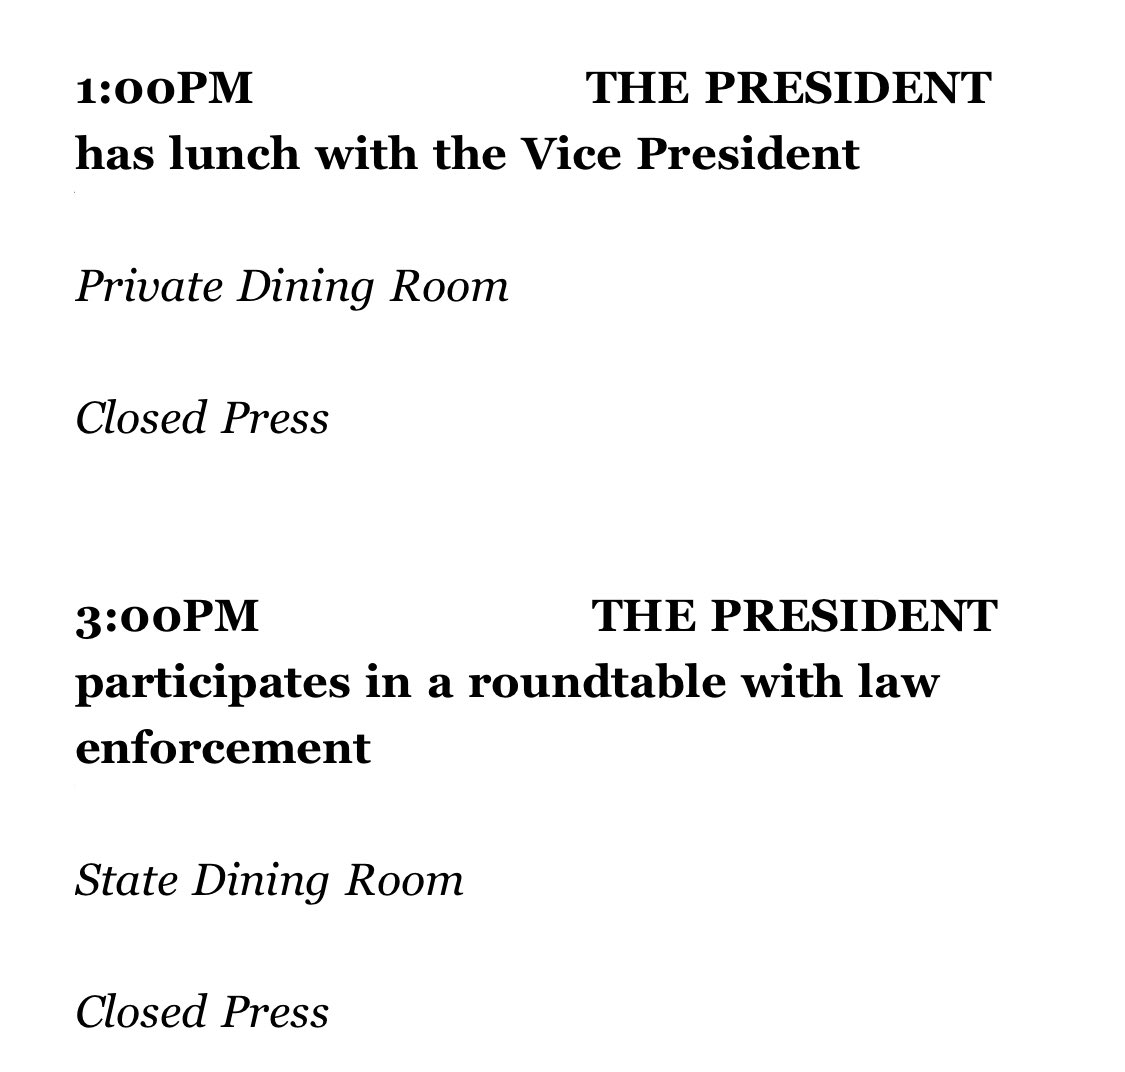 @realDonaldTrump Will you be skipping your daily briefing and continuing todays #TrumpMeltdown right up until your roundtable with law enforcement today?